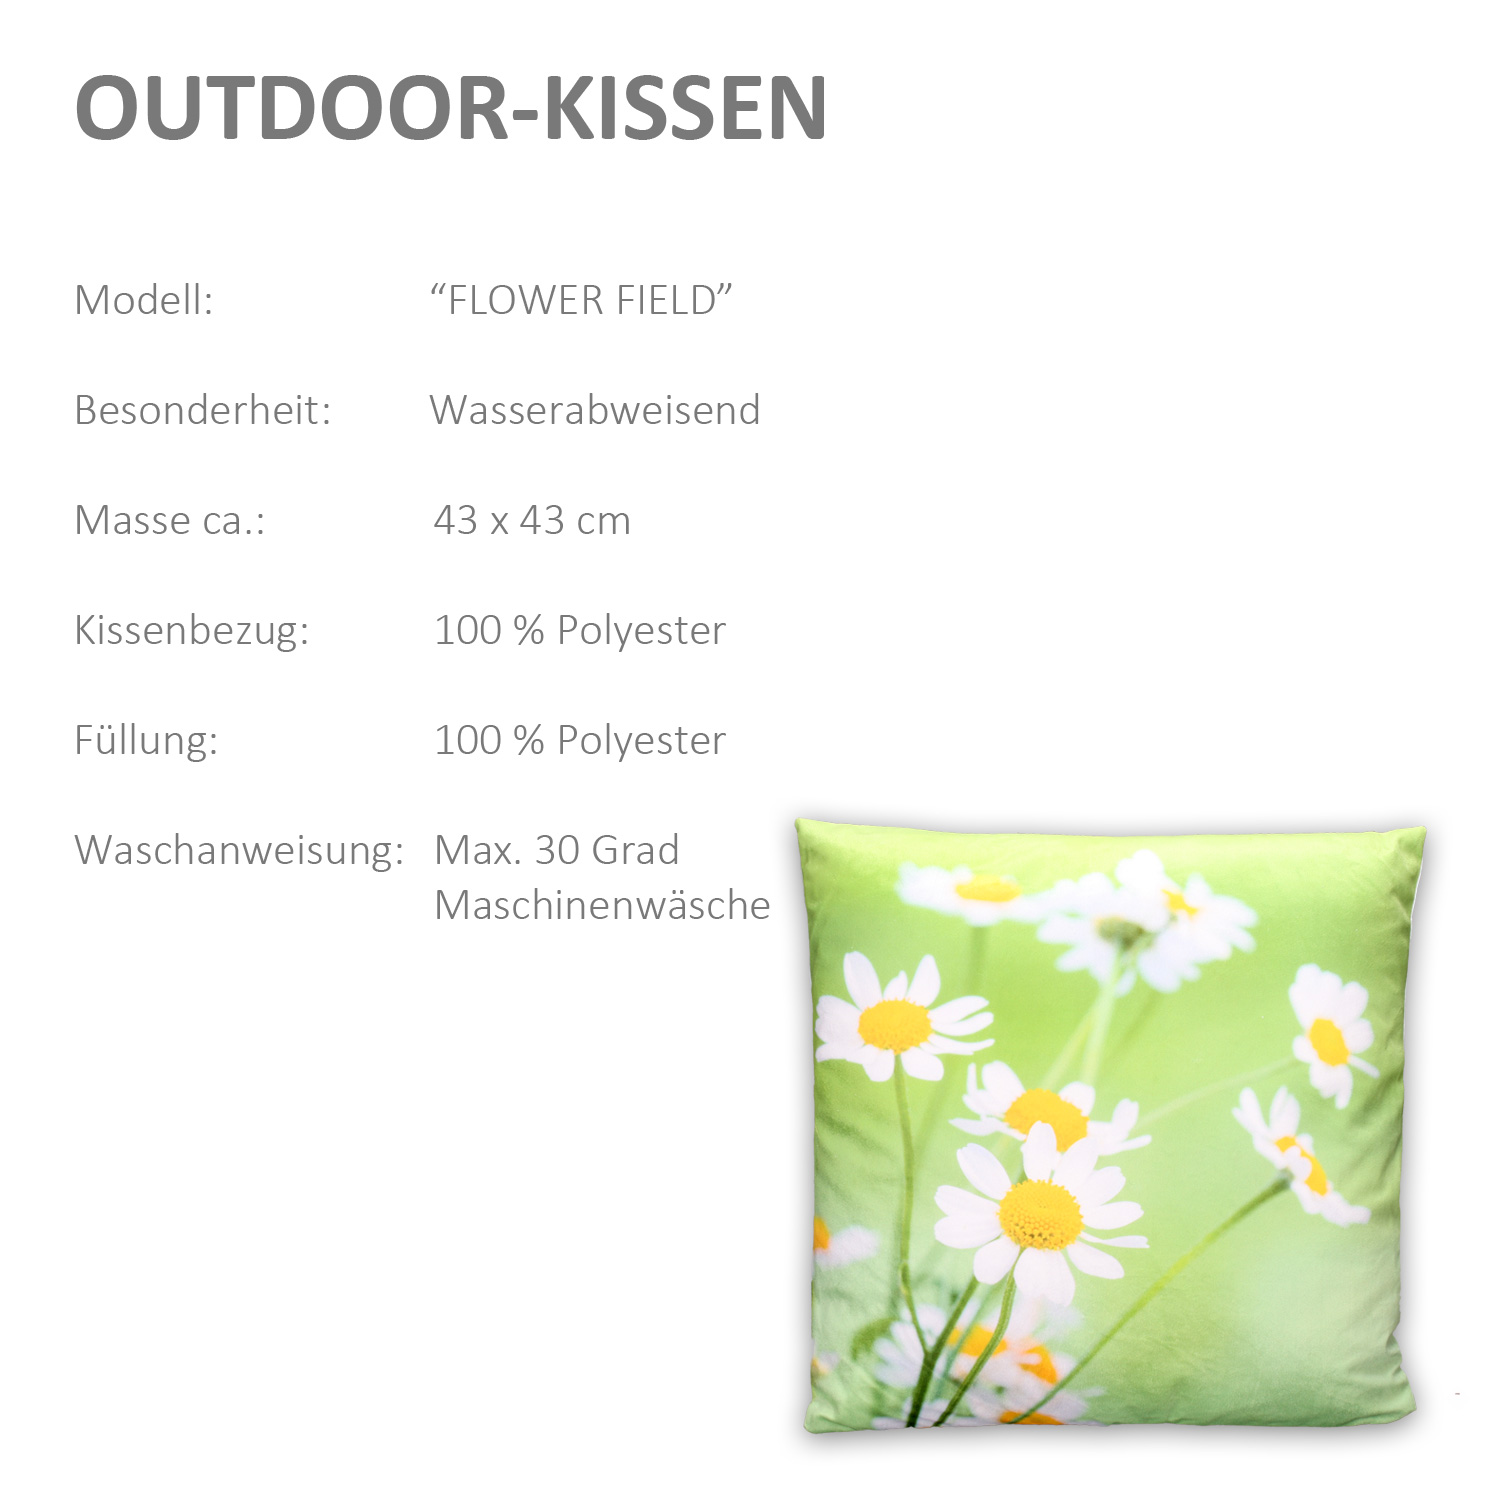 outdoor kissen polyester bestseller shop mit top marken. Black Bedroom Furniture Sets. Home Design Ideas